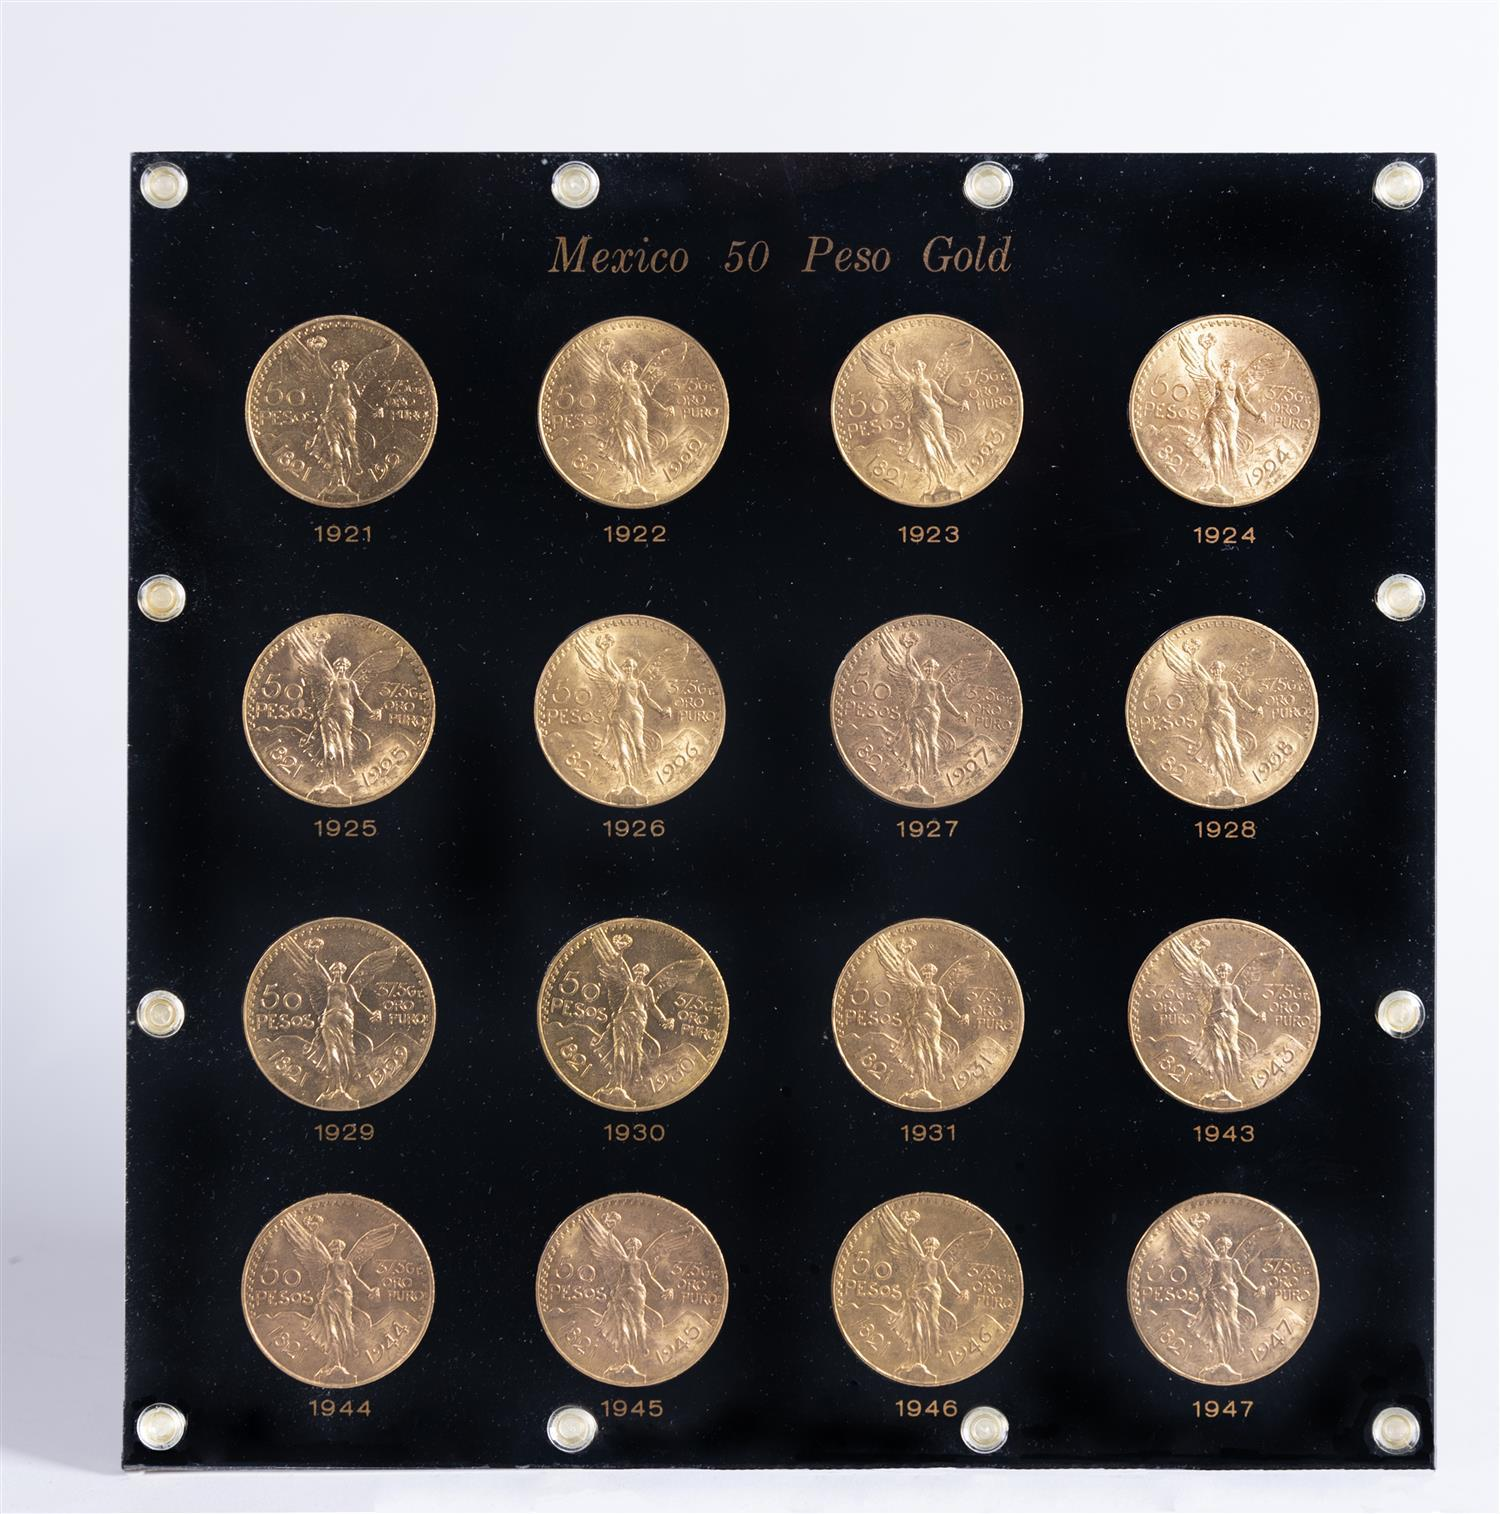 †Mexico 50 Peso Gold Coin Display with 16 Coins